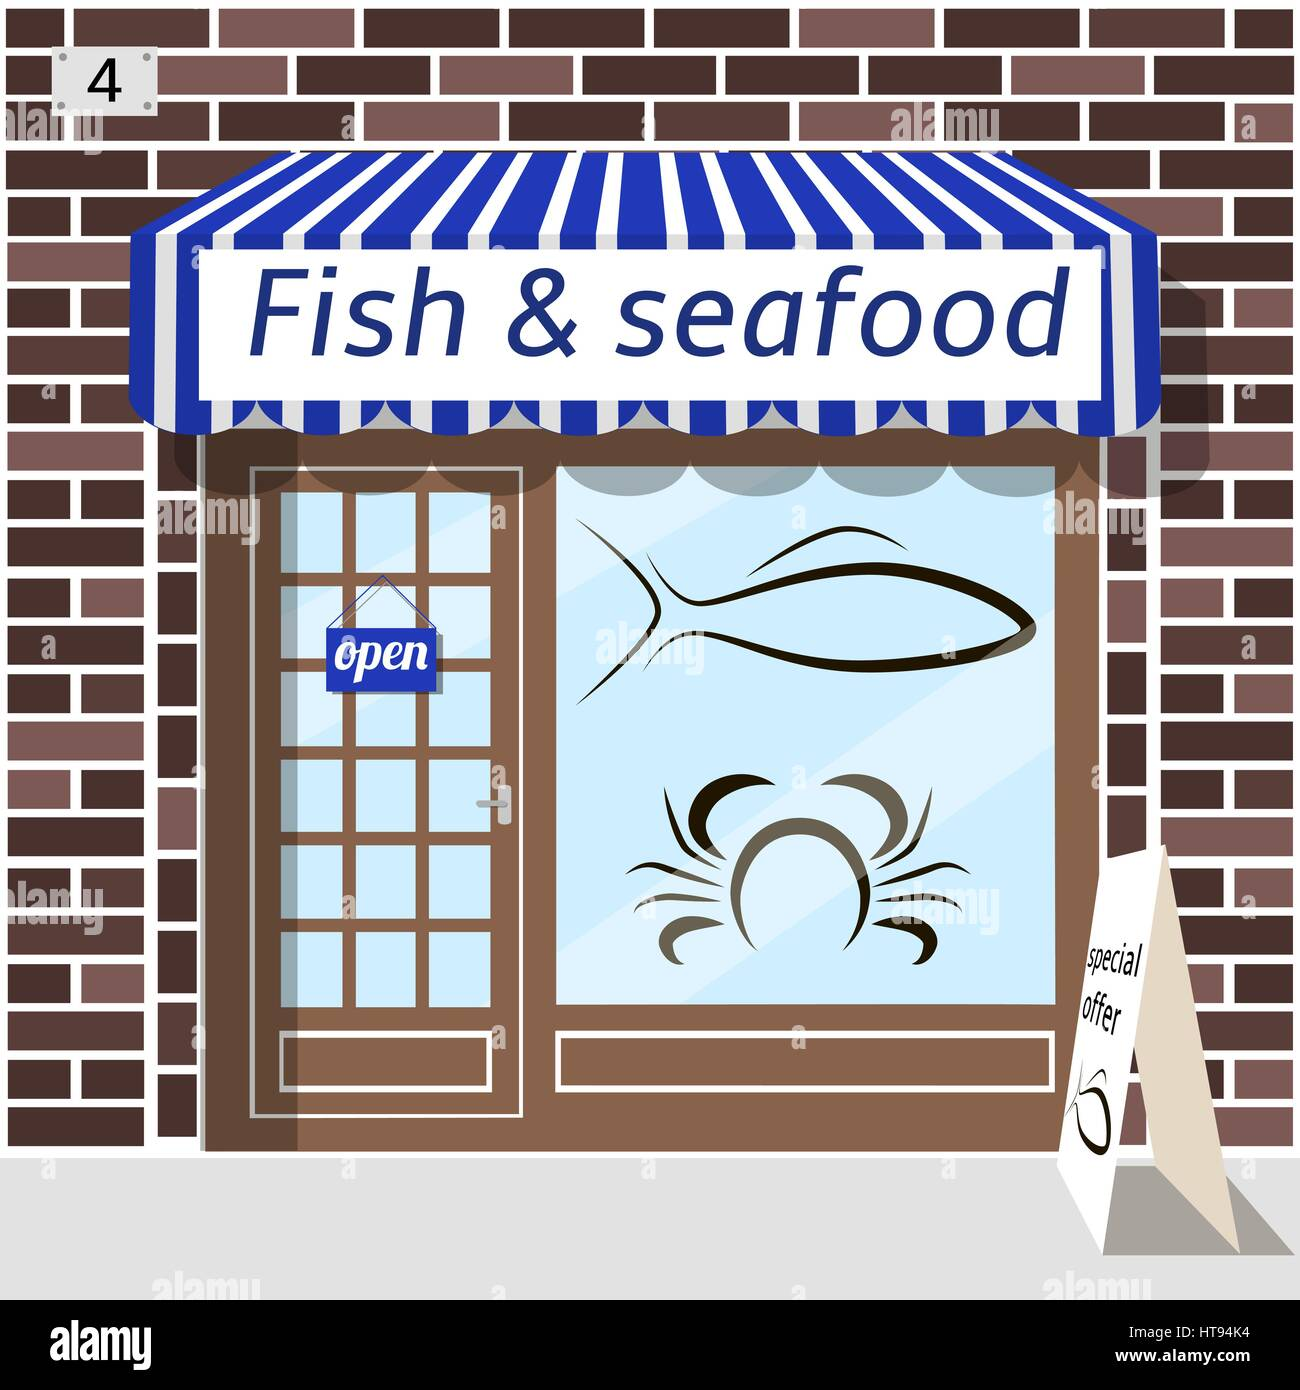 Fish and seafood shop. - Stock Vector